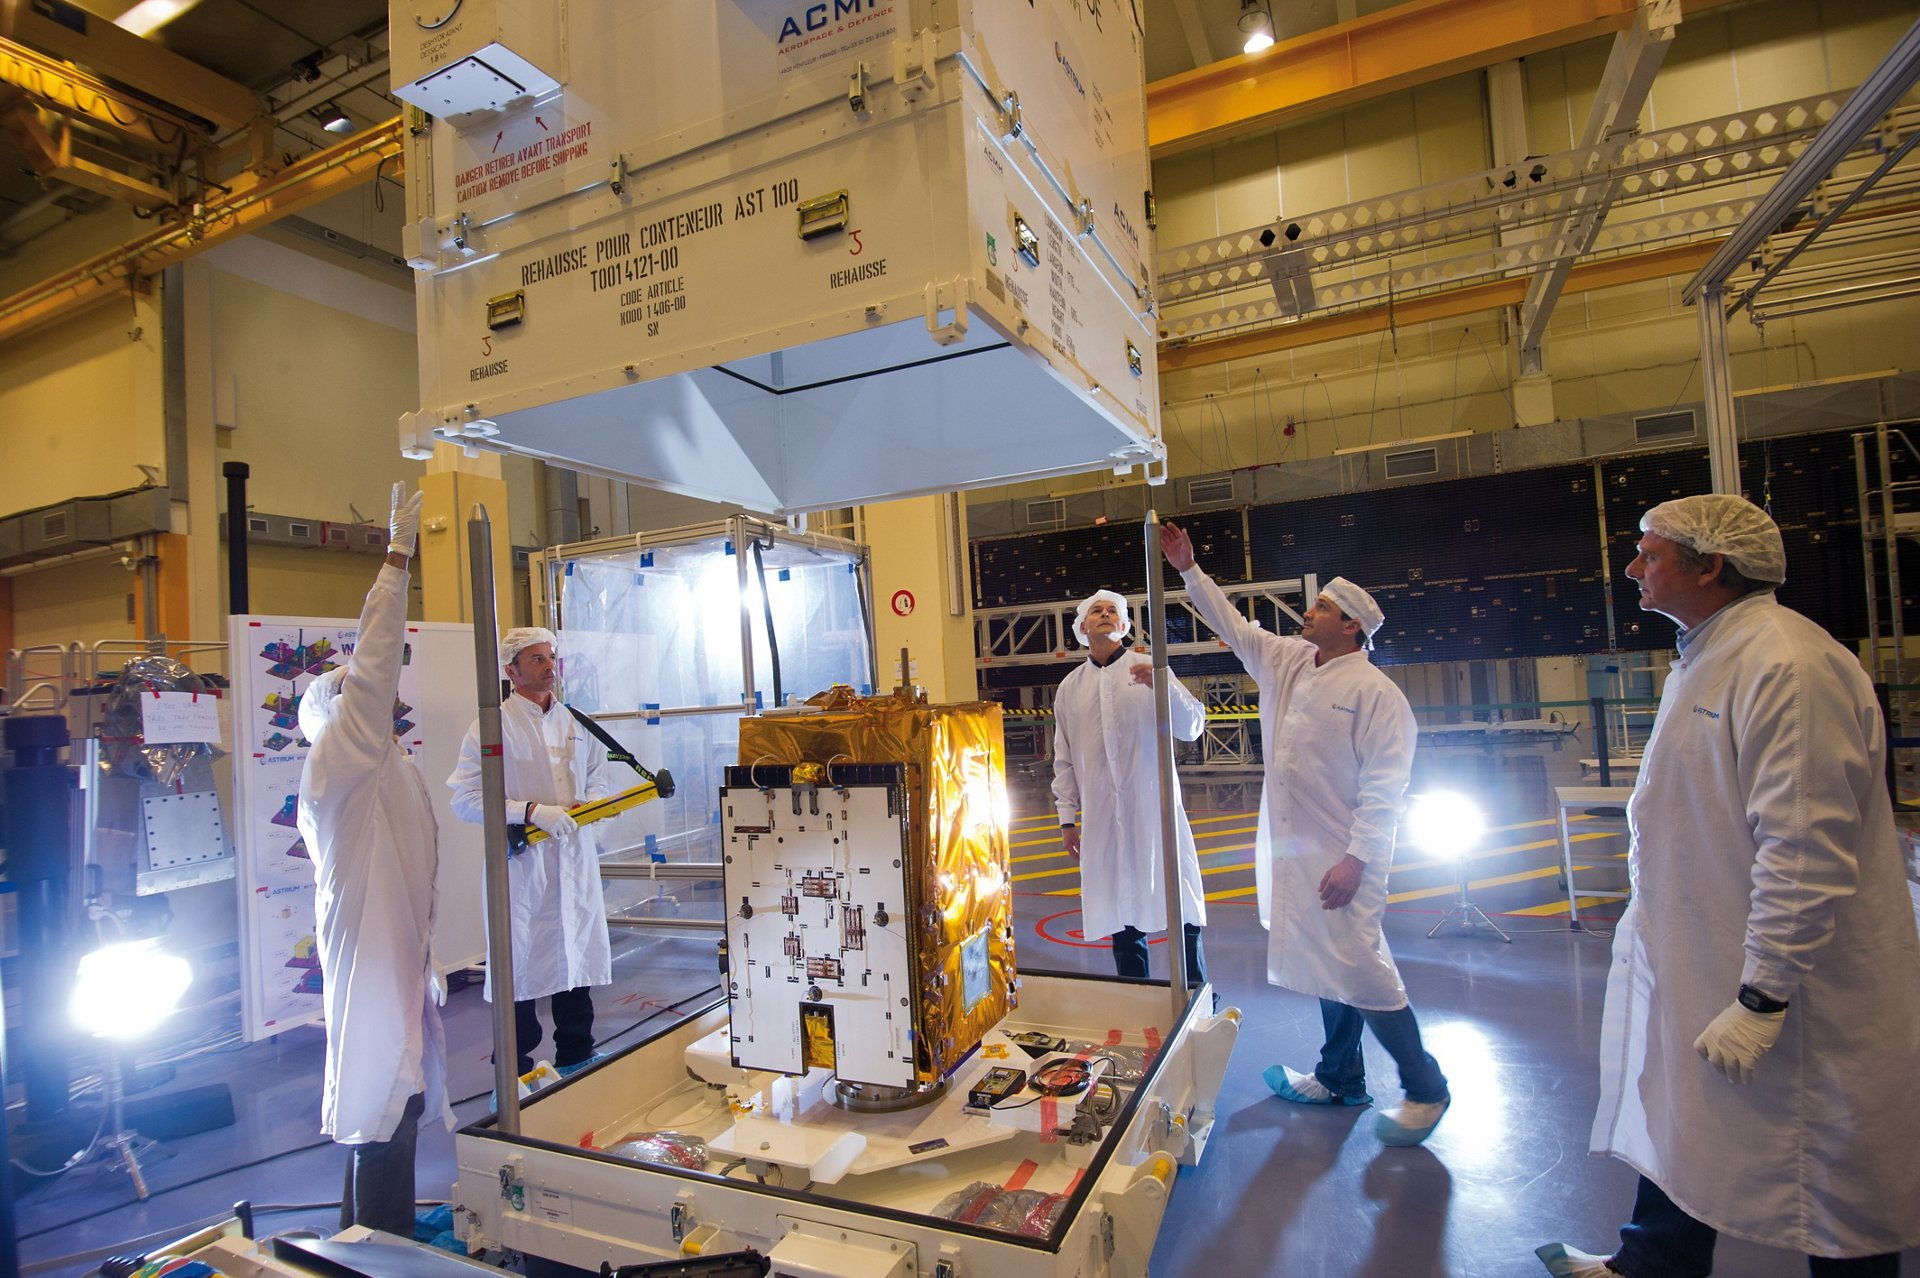 The Airbus-produced VNREDSat-1 Earth observation satellite is removed from its shipping container.